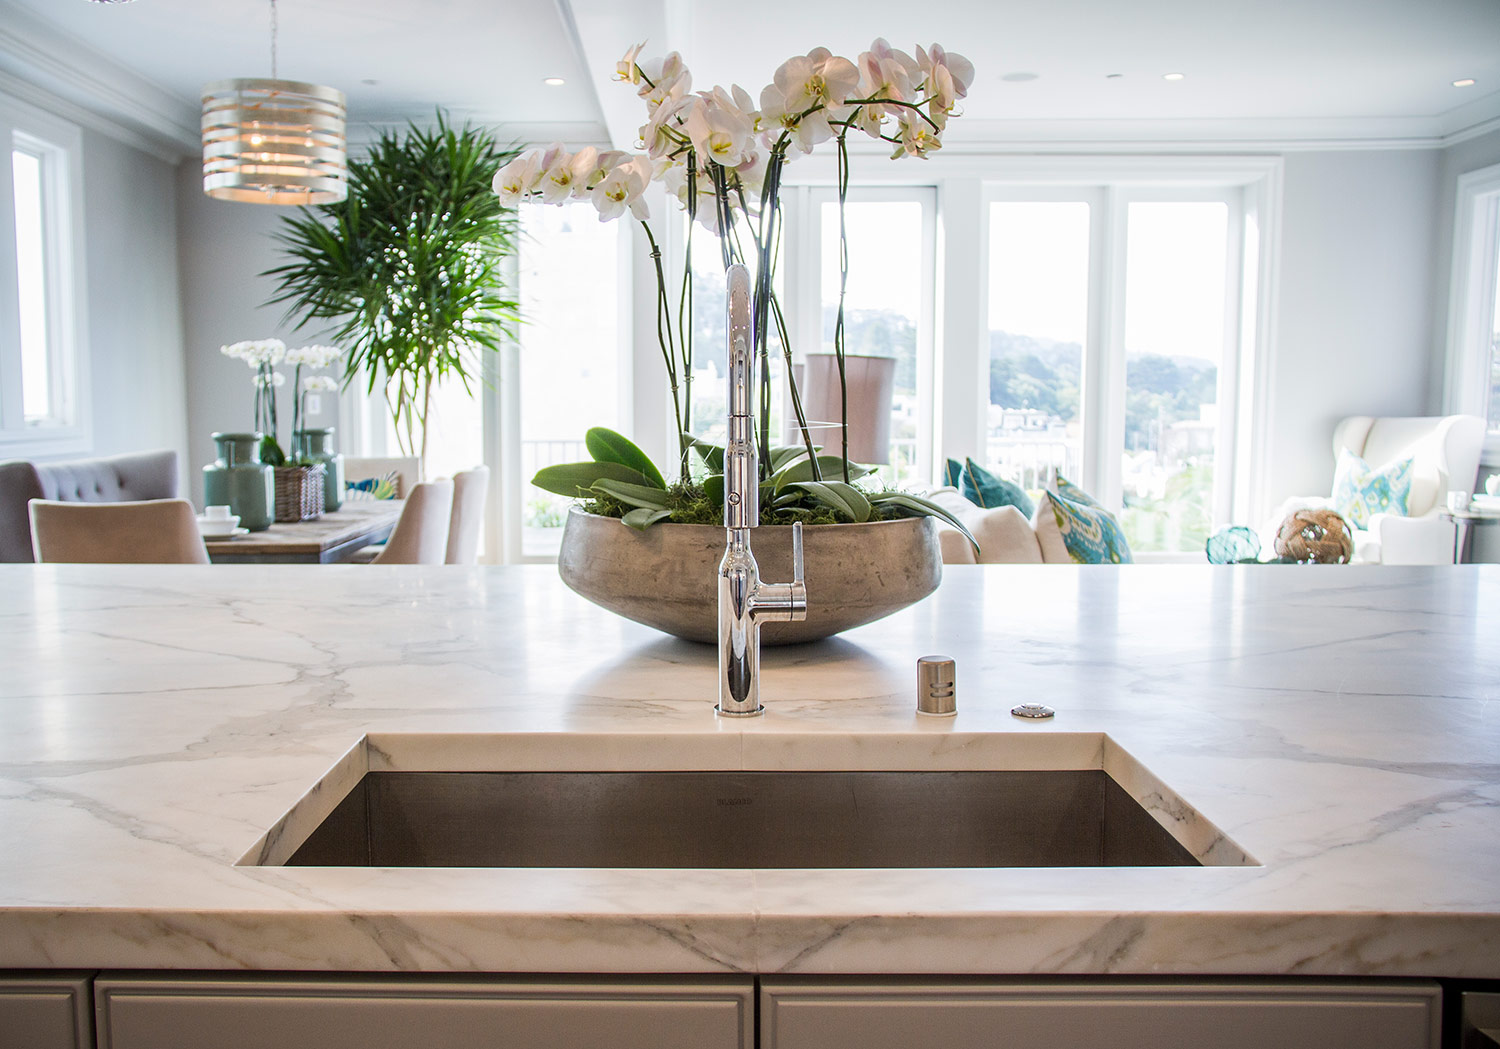 kitchen, marble counters, open space, dining room, detail, chandelier, lighting, open layout, overhead lighting, sink, faucet